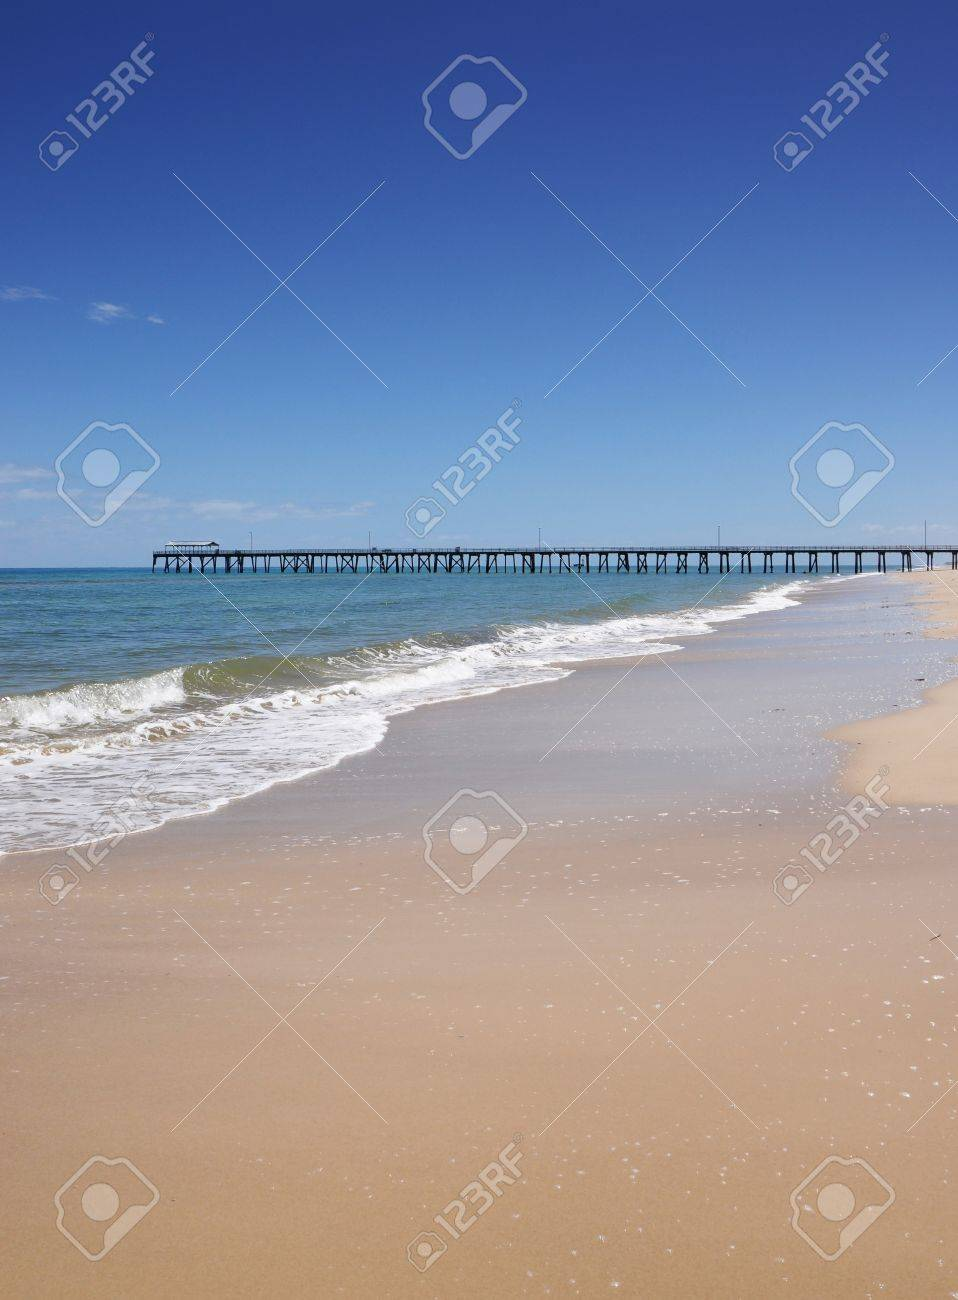 Background image location - Open Beach With Jetty In Background Location Henley Beach South Australia Looking Out To The